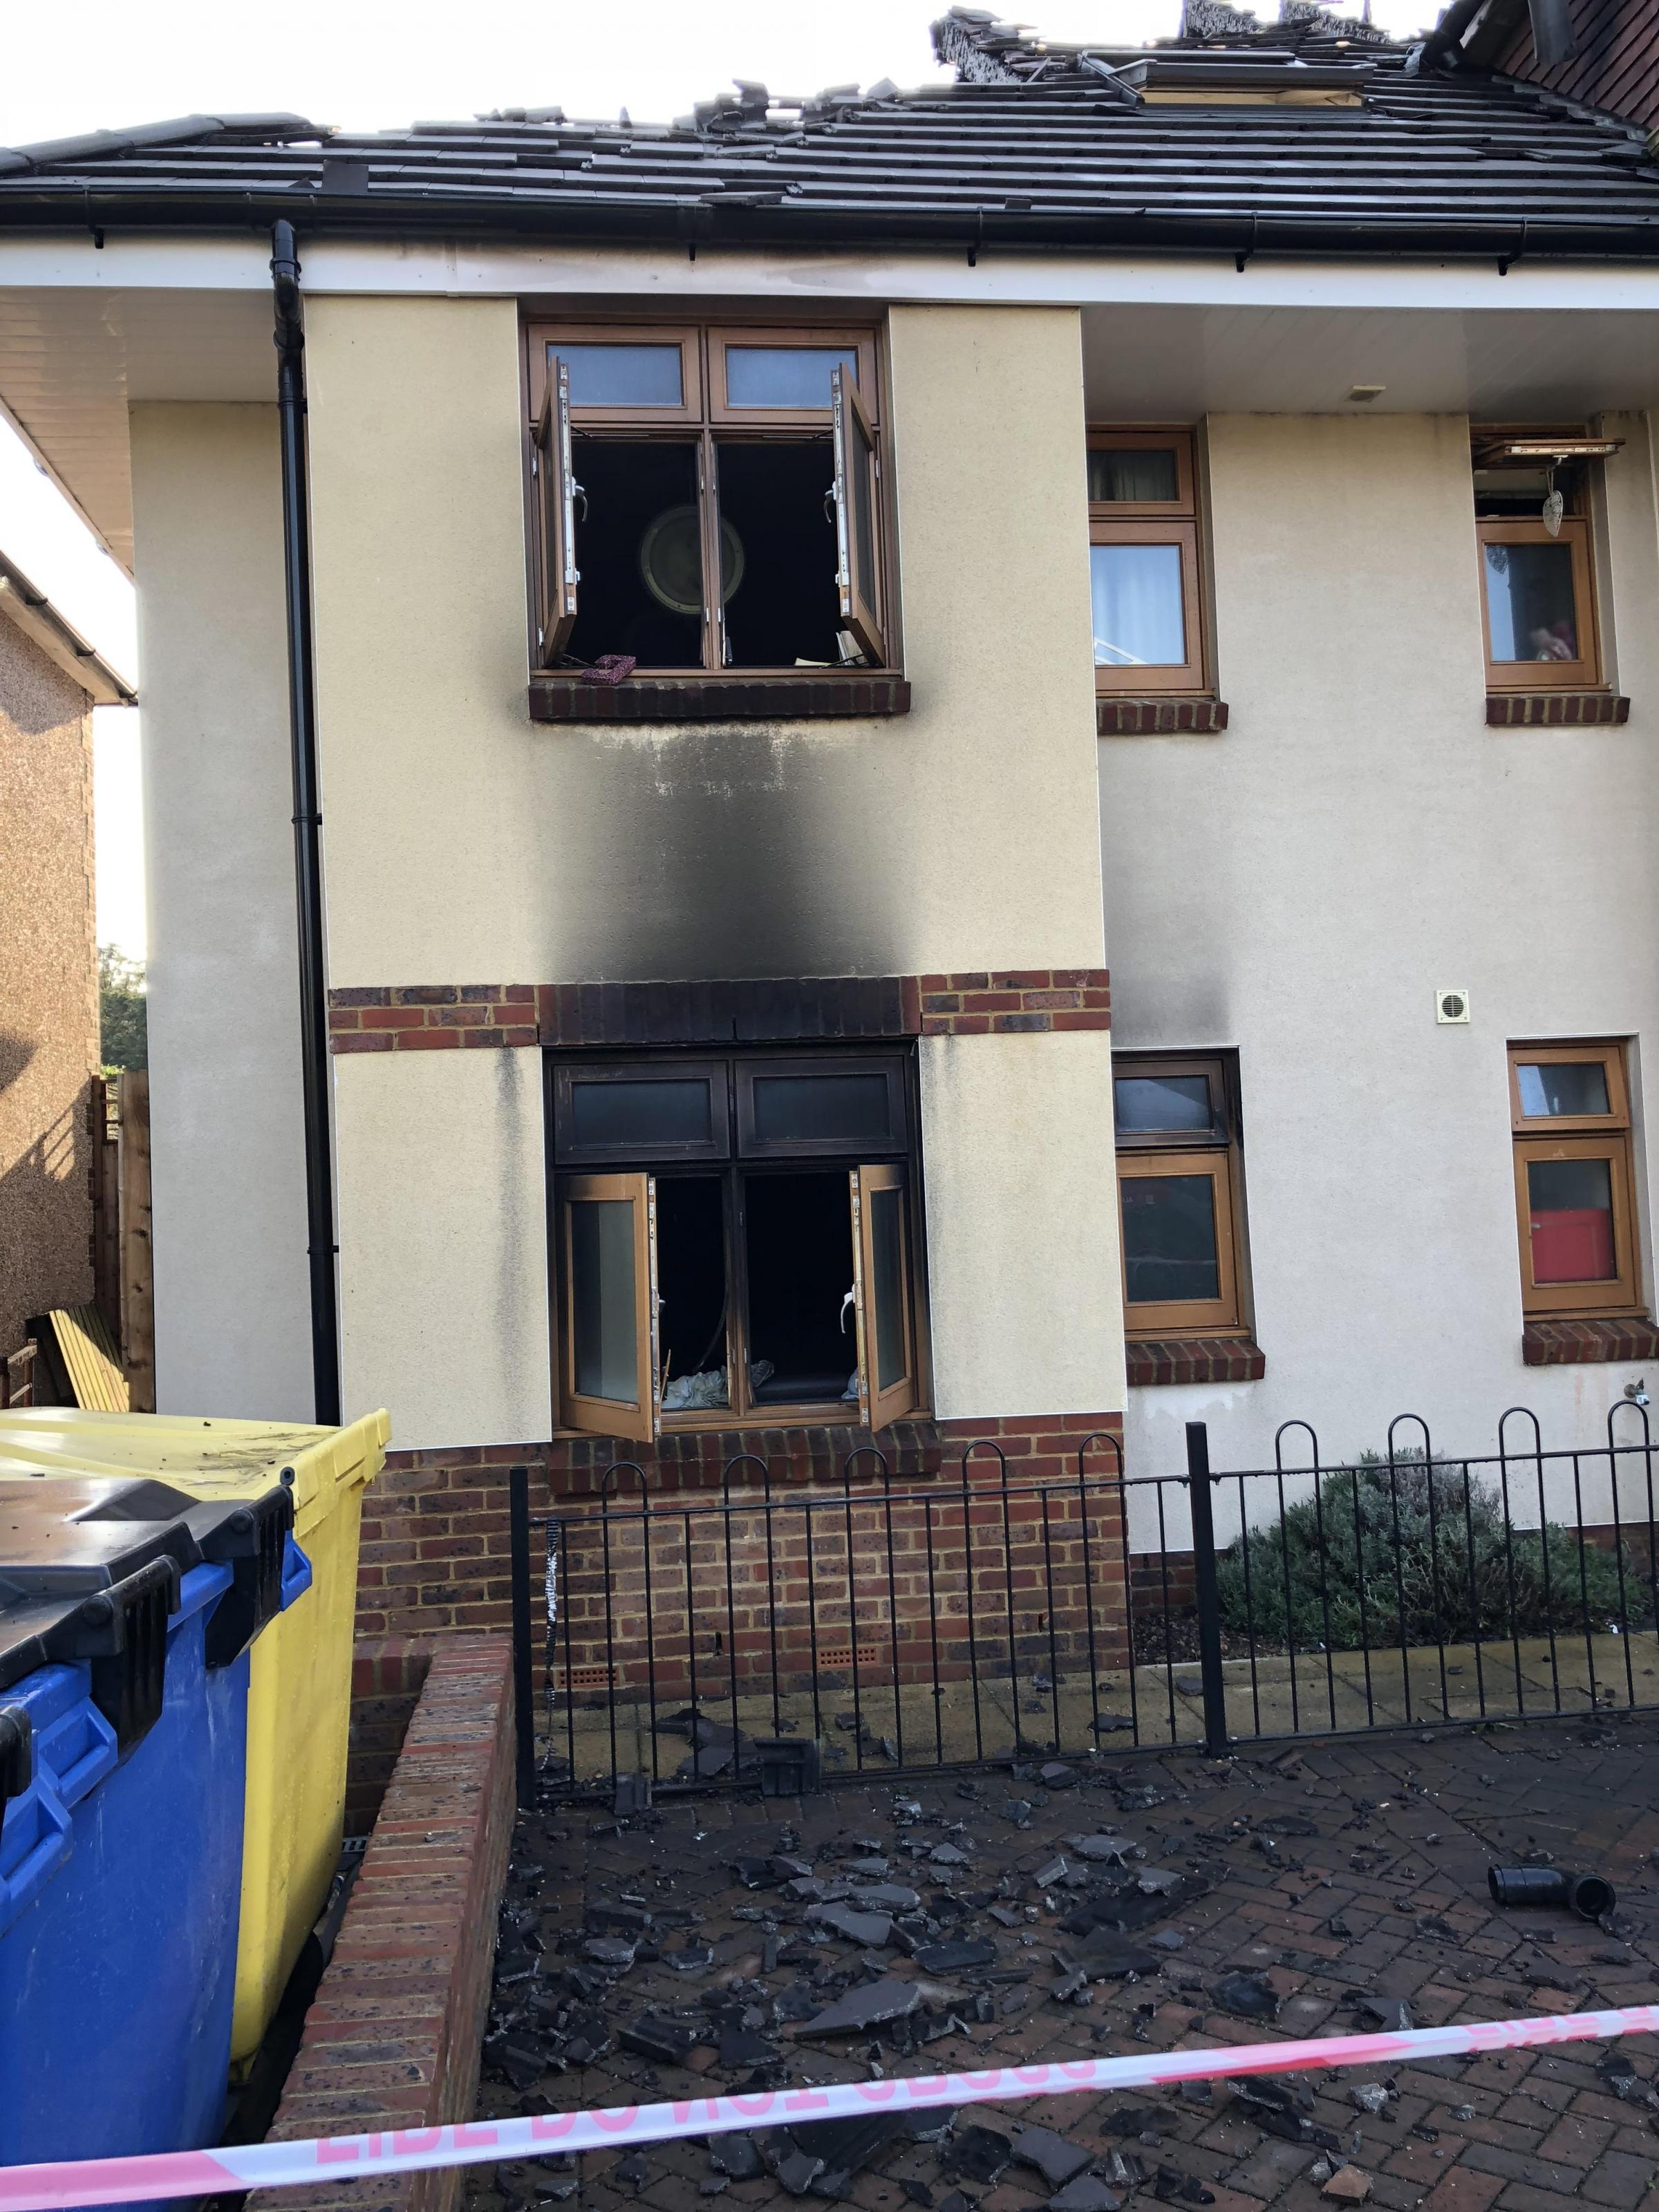 The care home was ripped through by fire